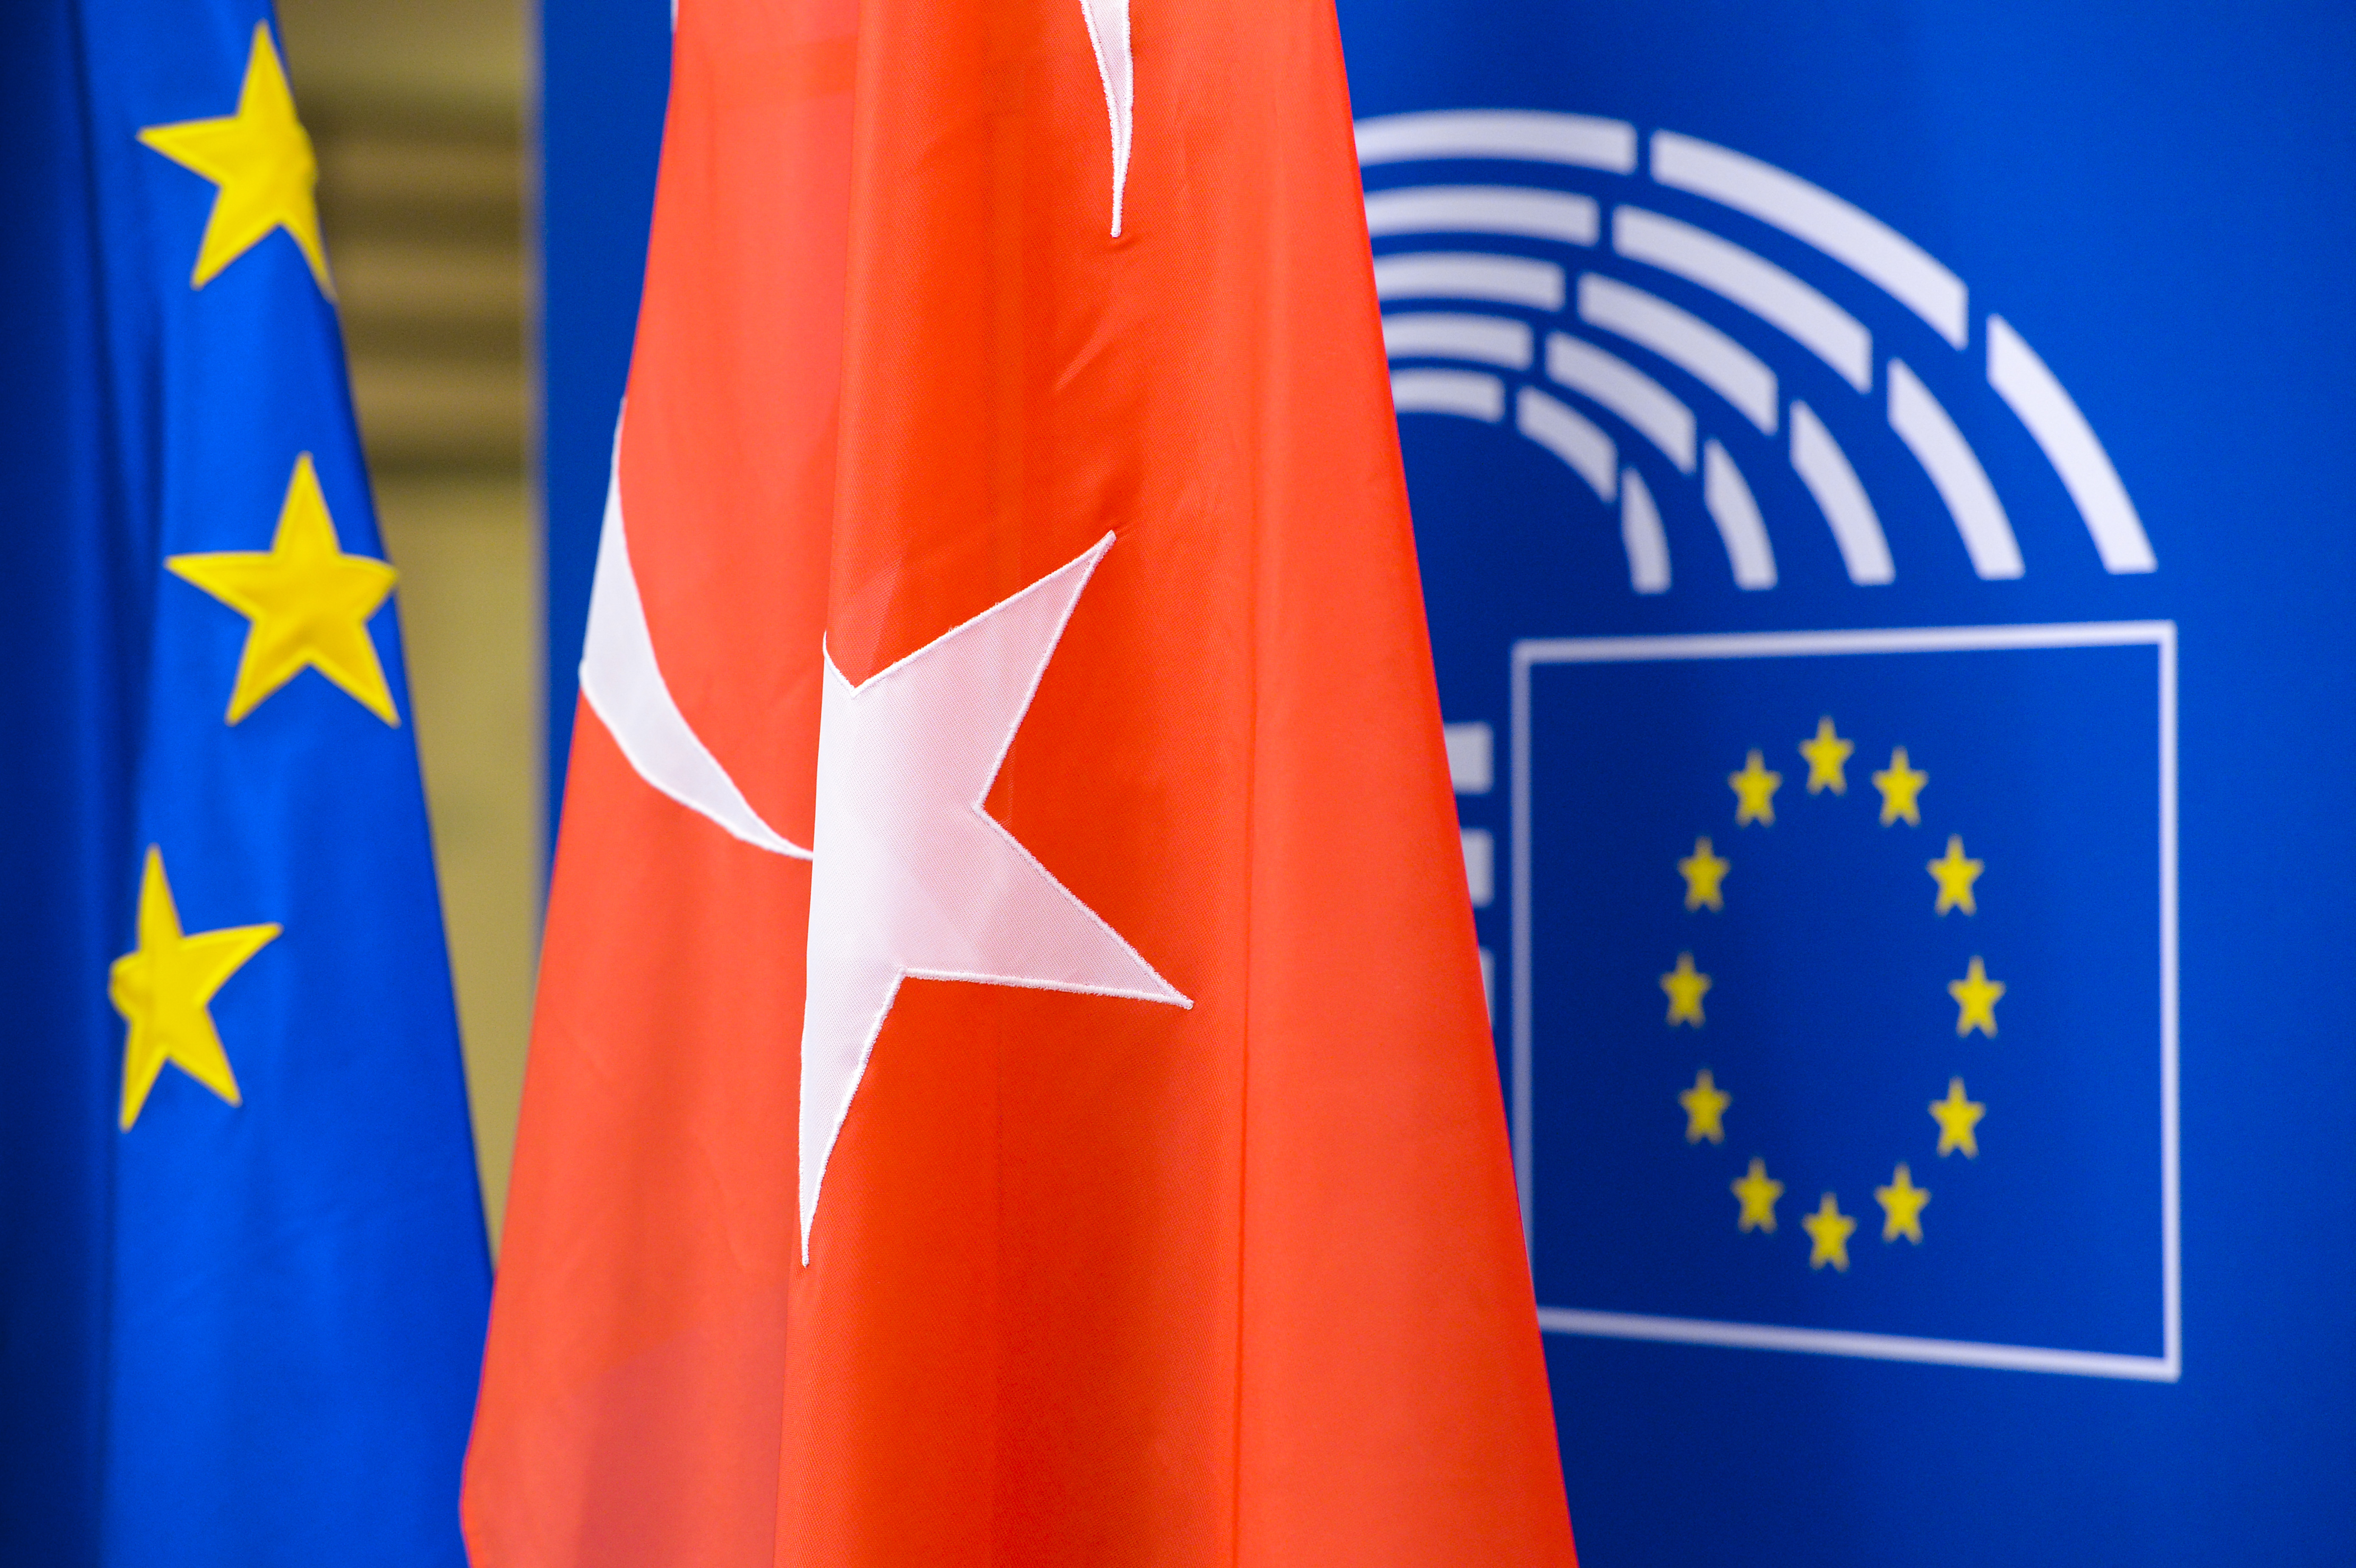 European flag and Turkish flag